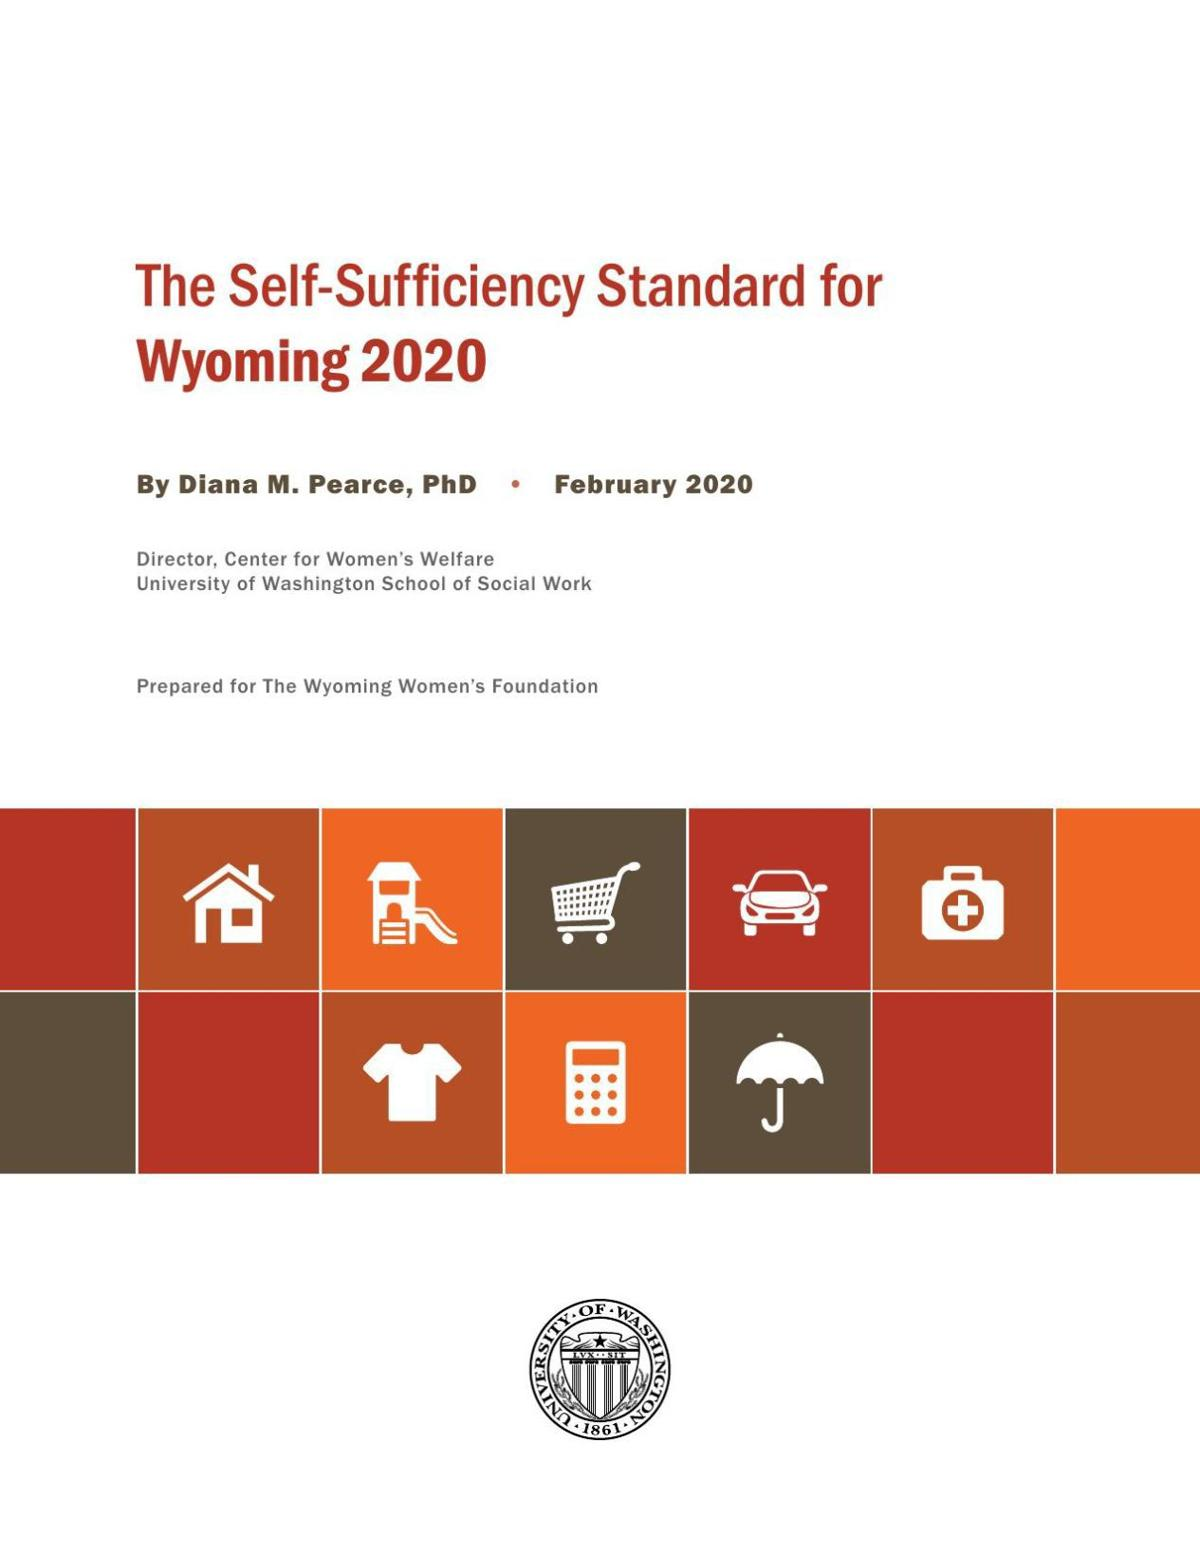 The Self-Sufficiency Standard for Wyoming 2020